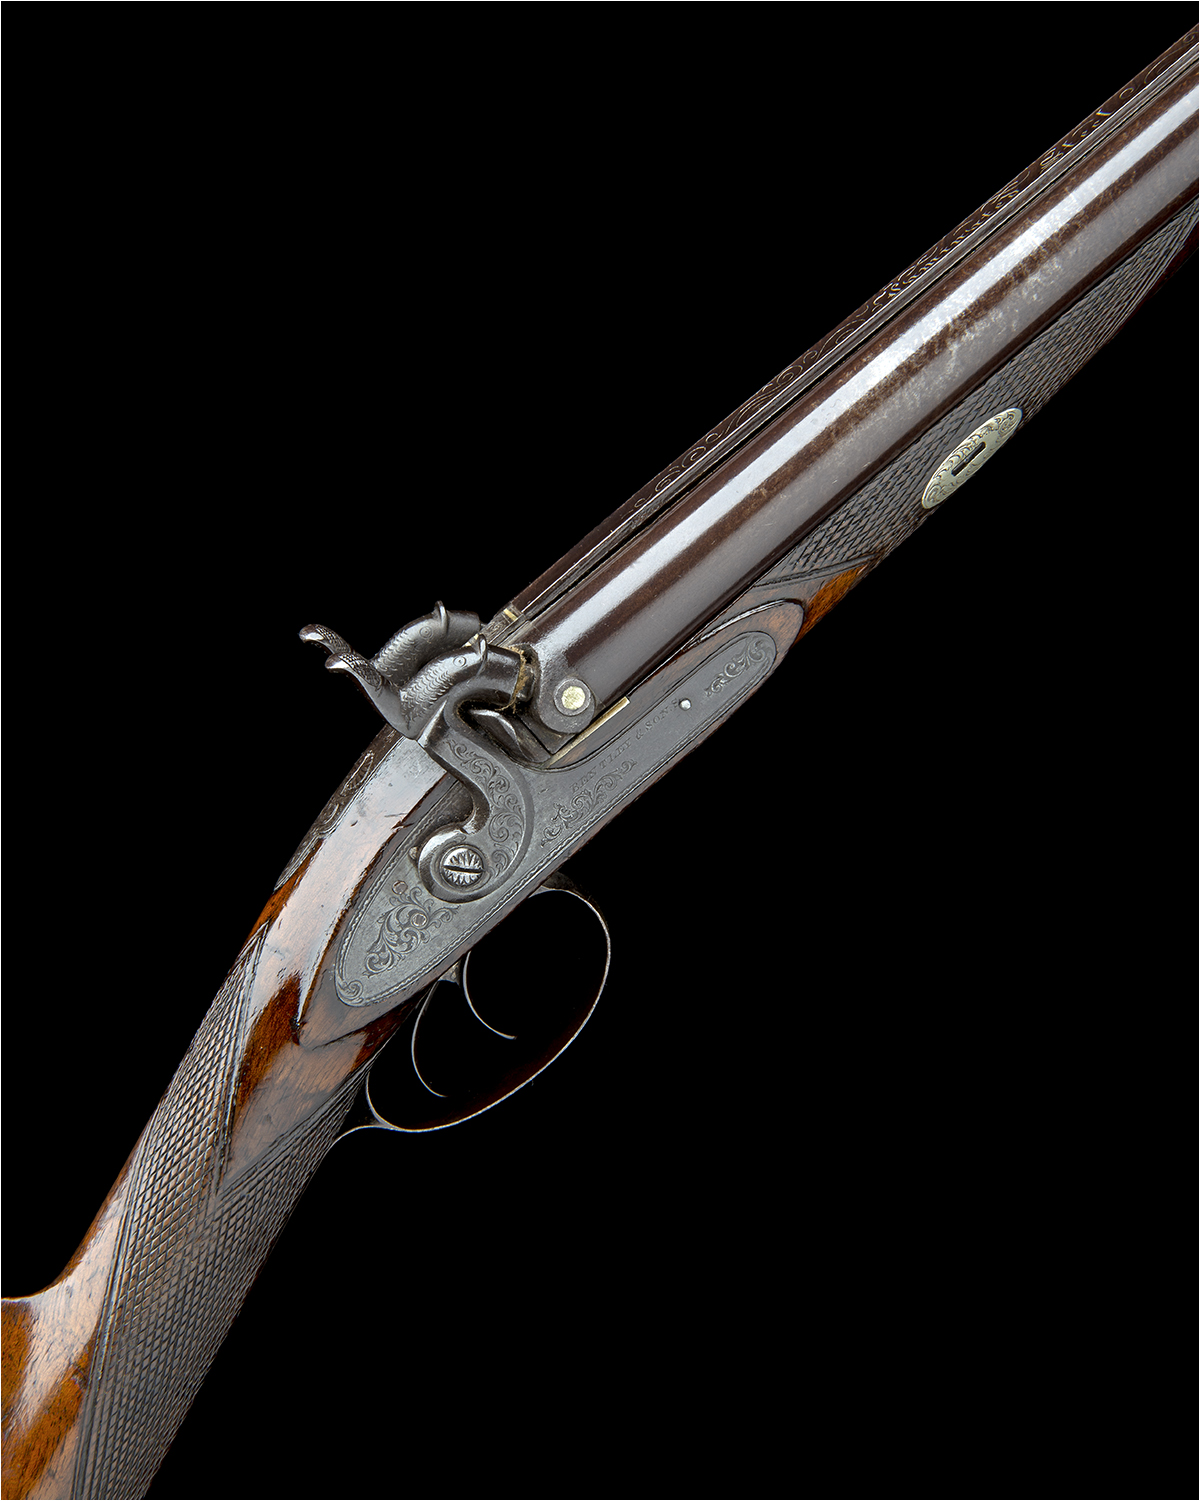 BENTLEY & SONS, LONDON A 15-BORE PERCUSSION DOUBLE-BARRELLED SPORTING-GUN, no visible serial number,